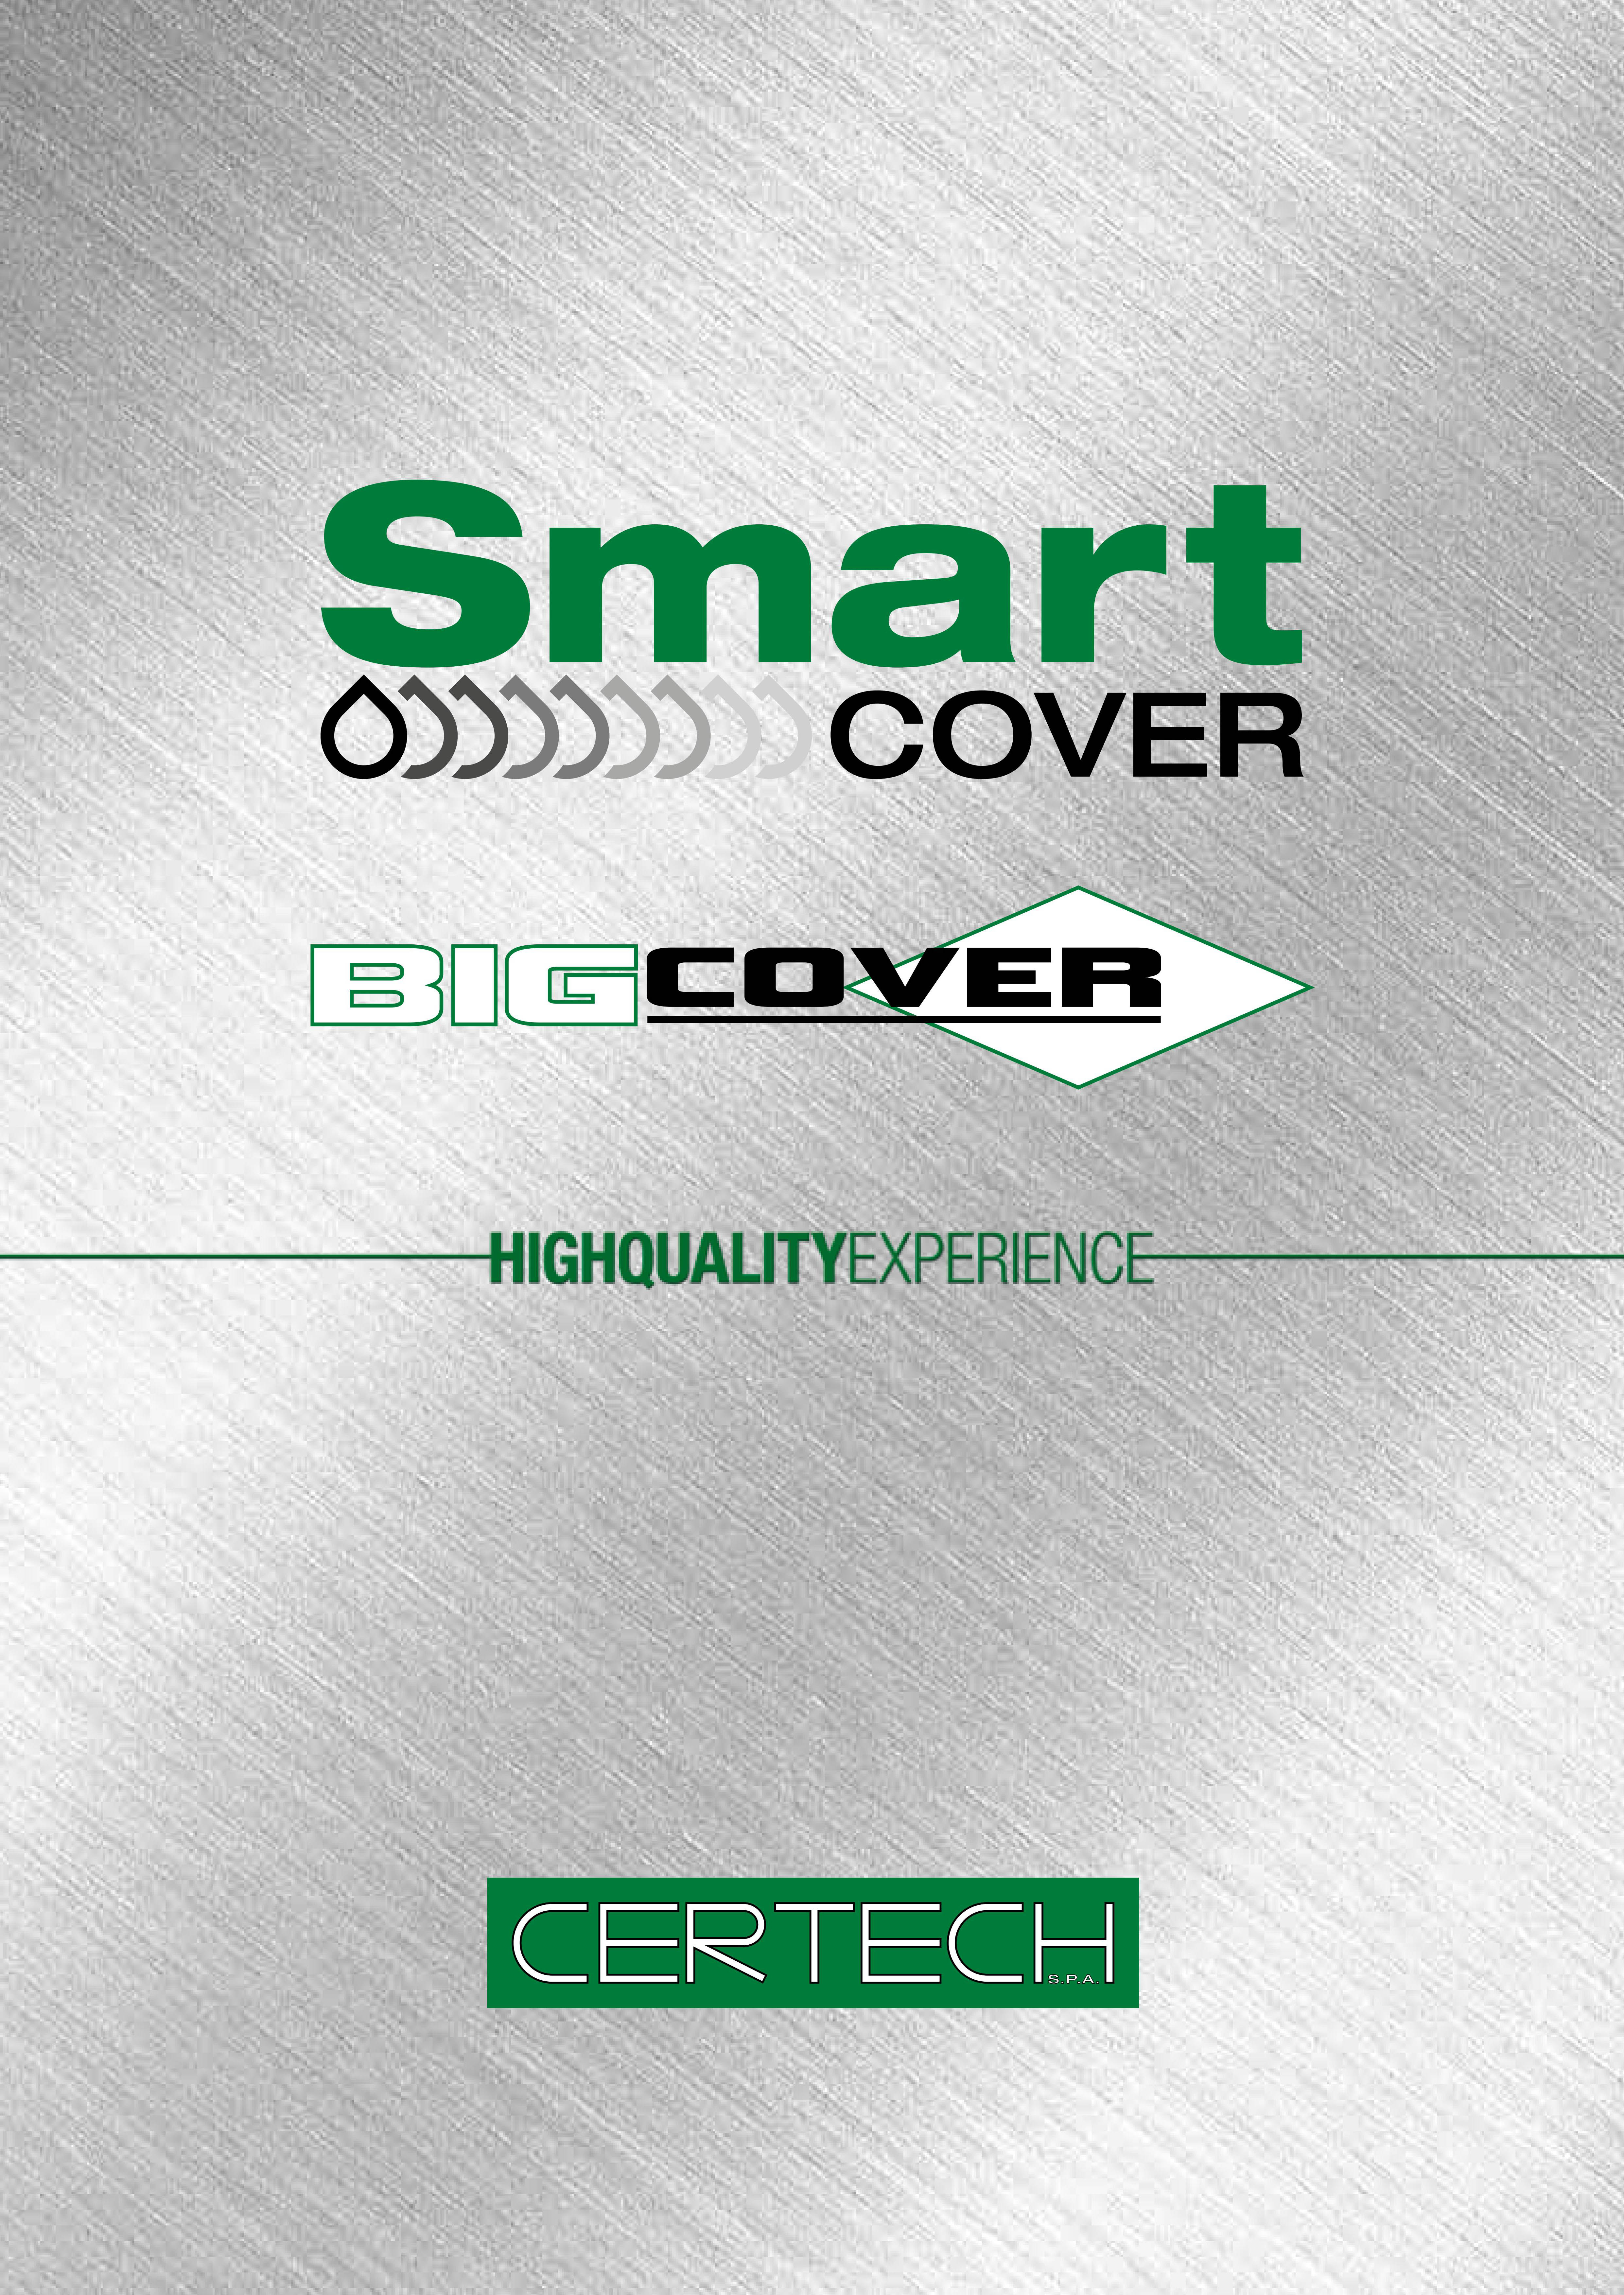 SMART COVER – BIG COVER_02